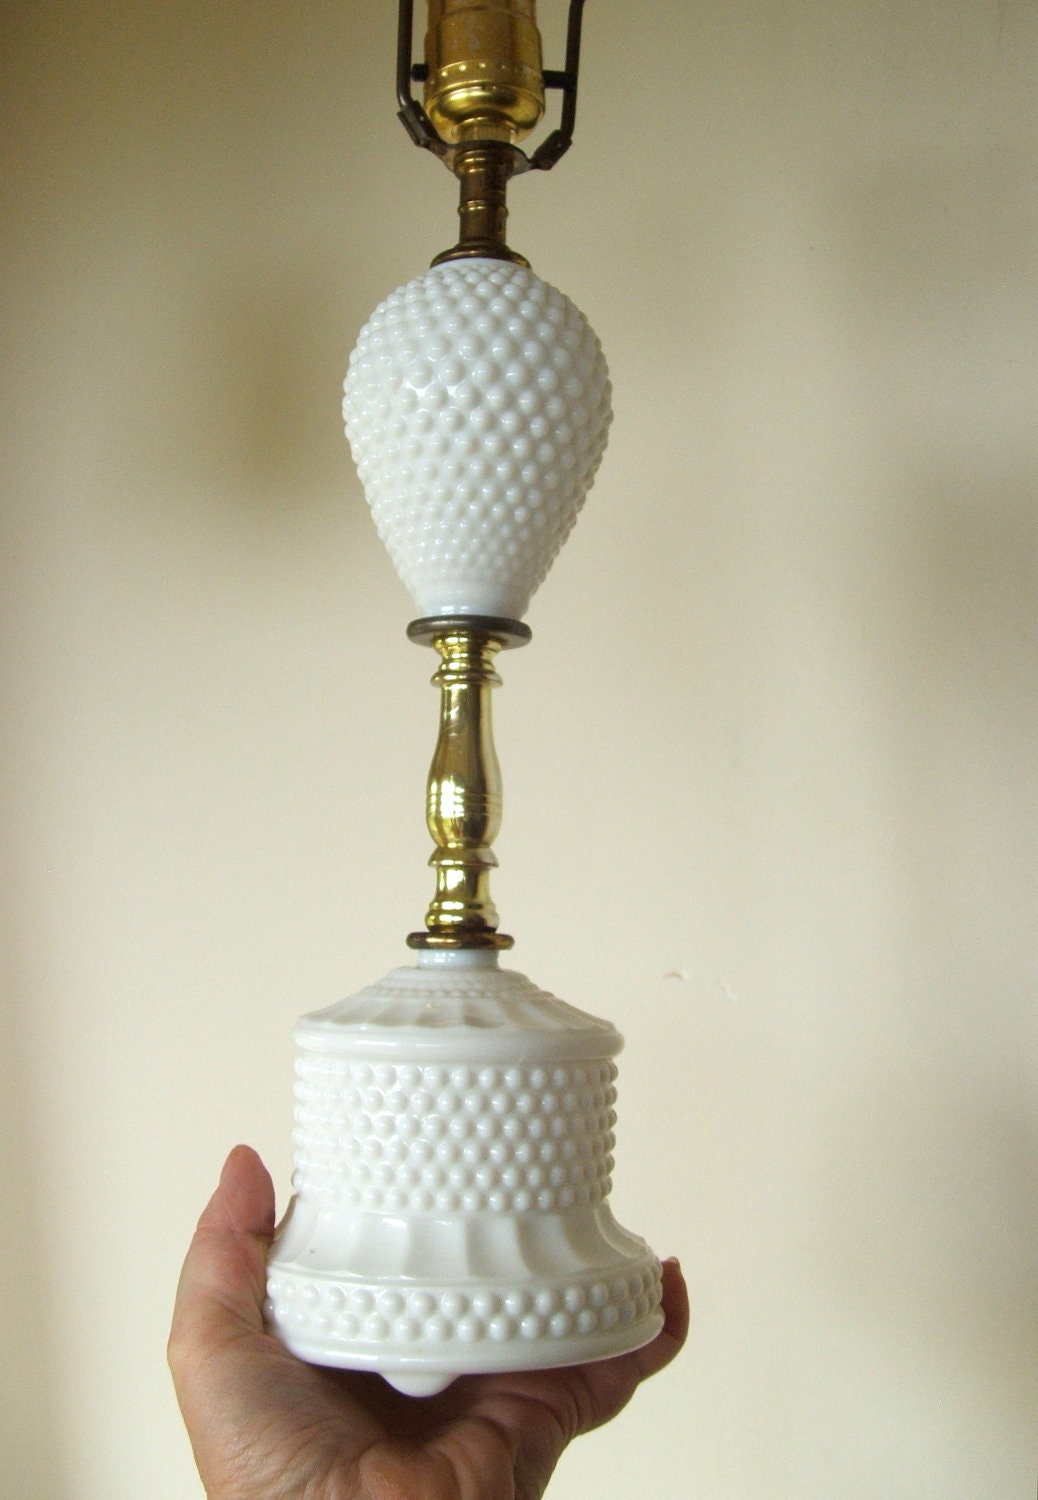 Vintage Hobnail Milk Glass Lamp By Lookonmytreasures On Etsy